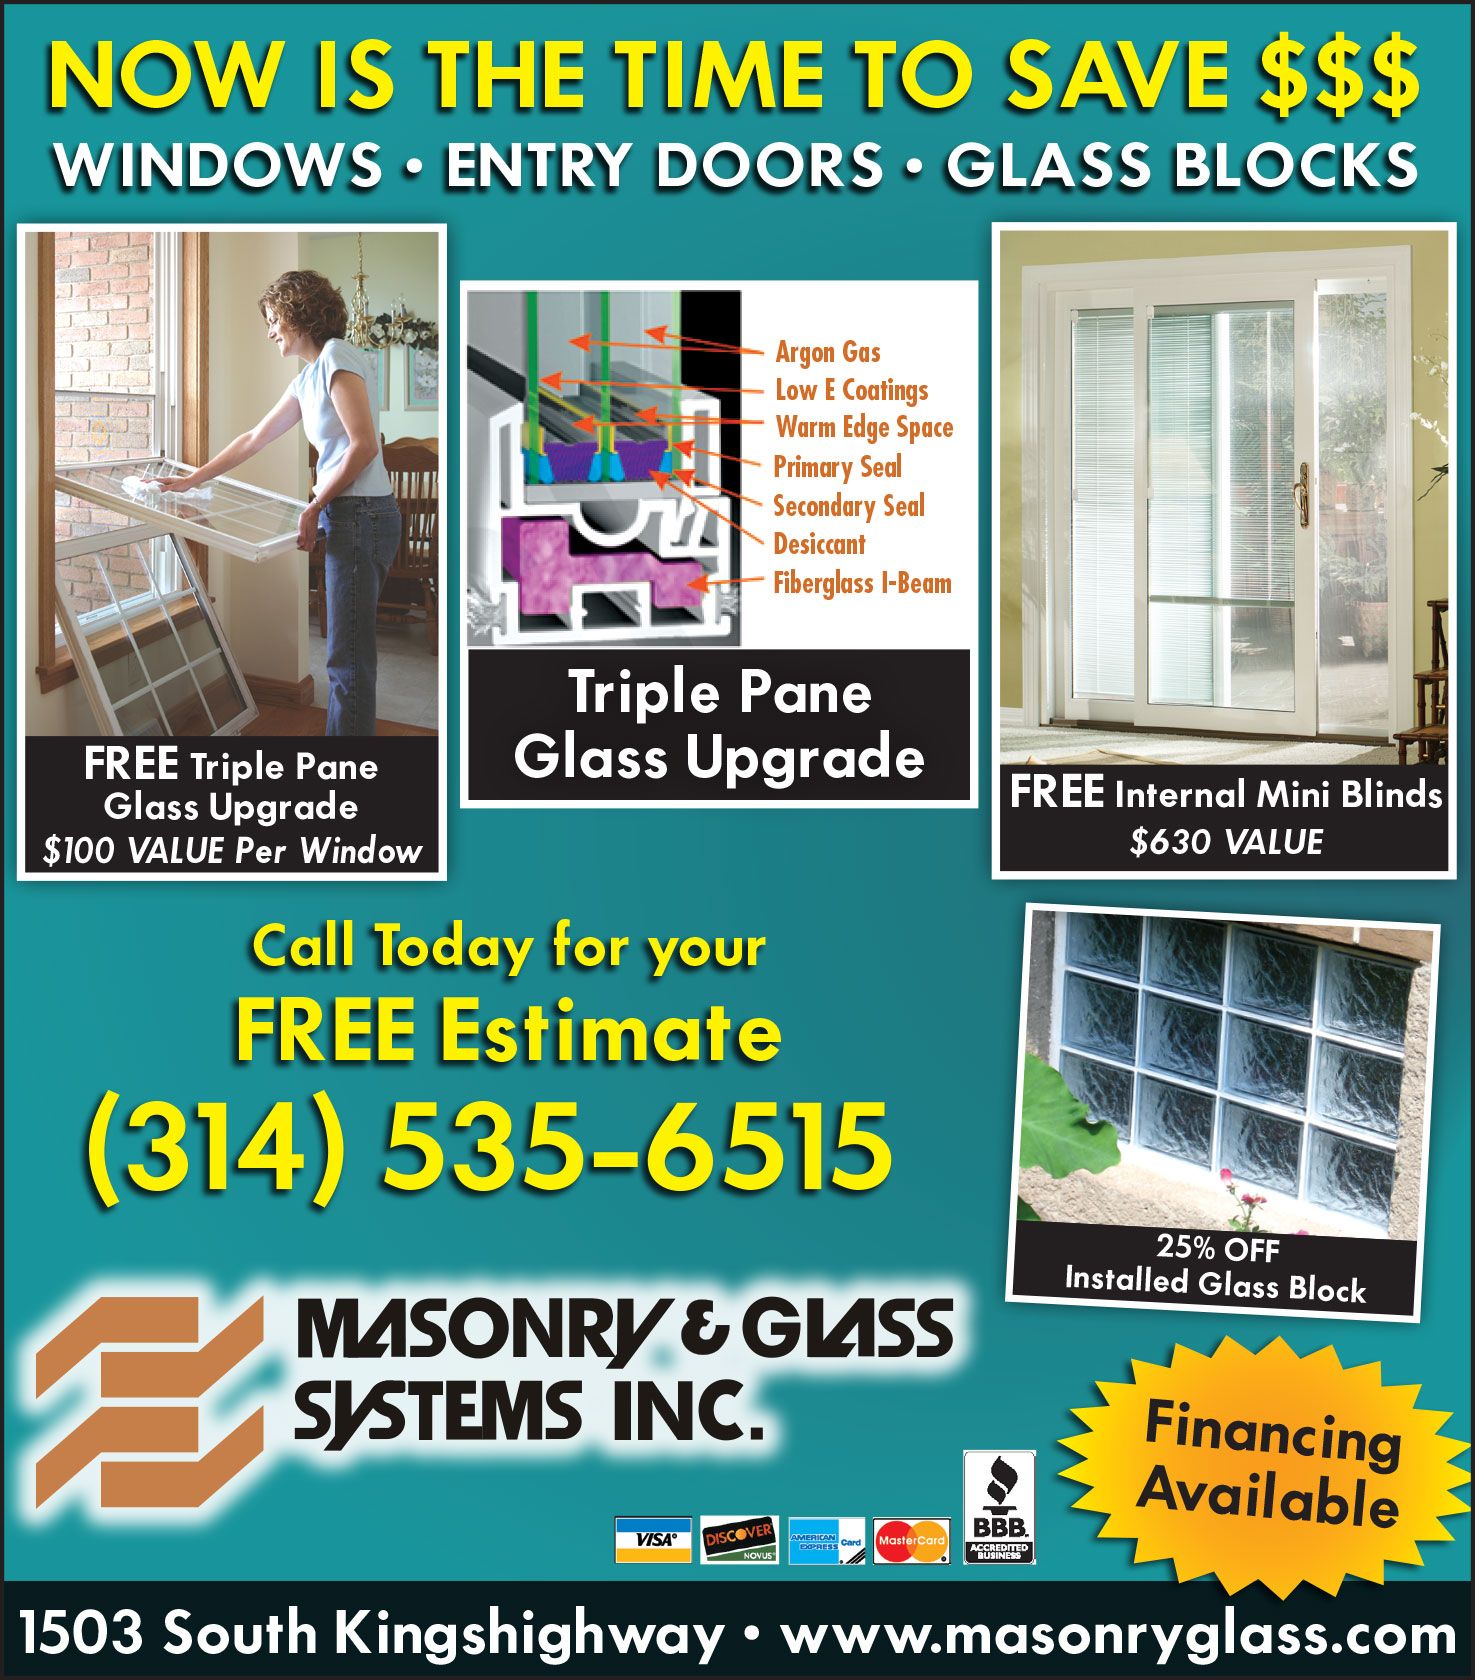 Now is the time to save money from masonry glass systems